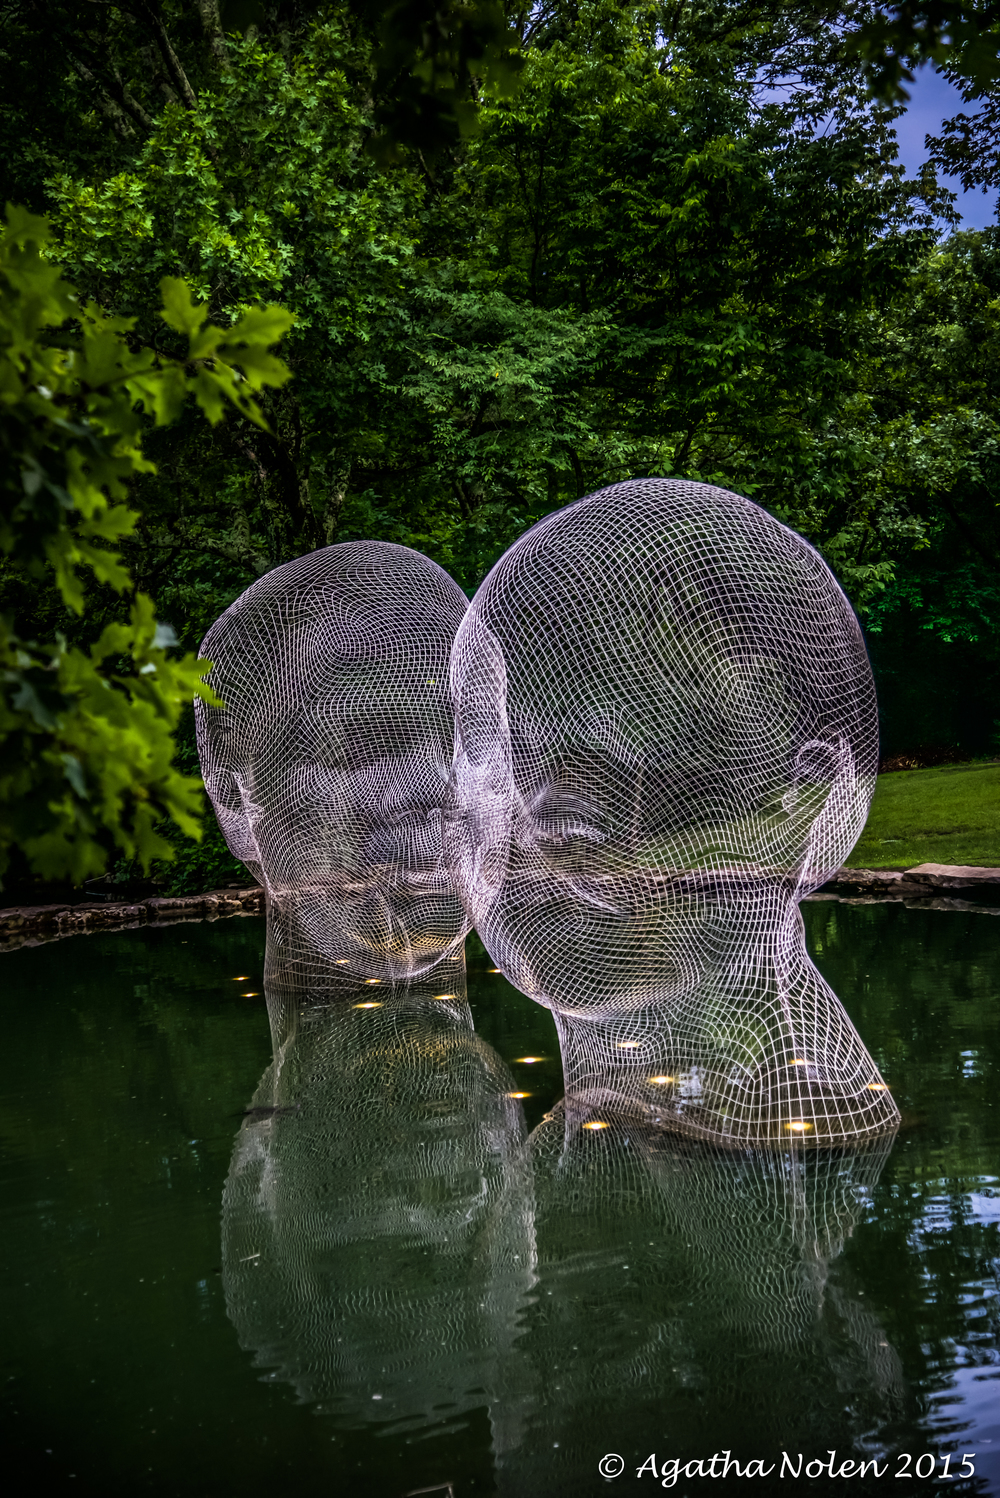 Awilda and Irma (2014) by Jaume Plensa, Cheekwood Botanical Gardens, Nashville, TN, 2015